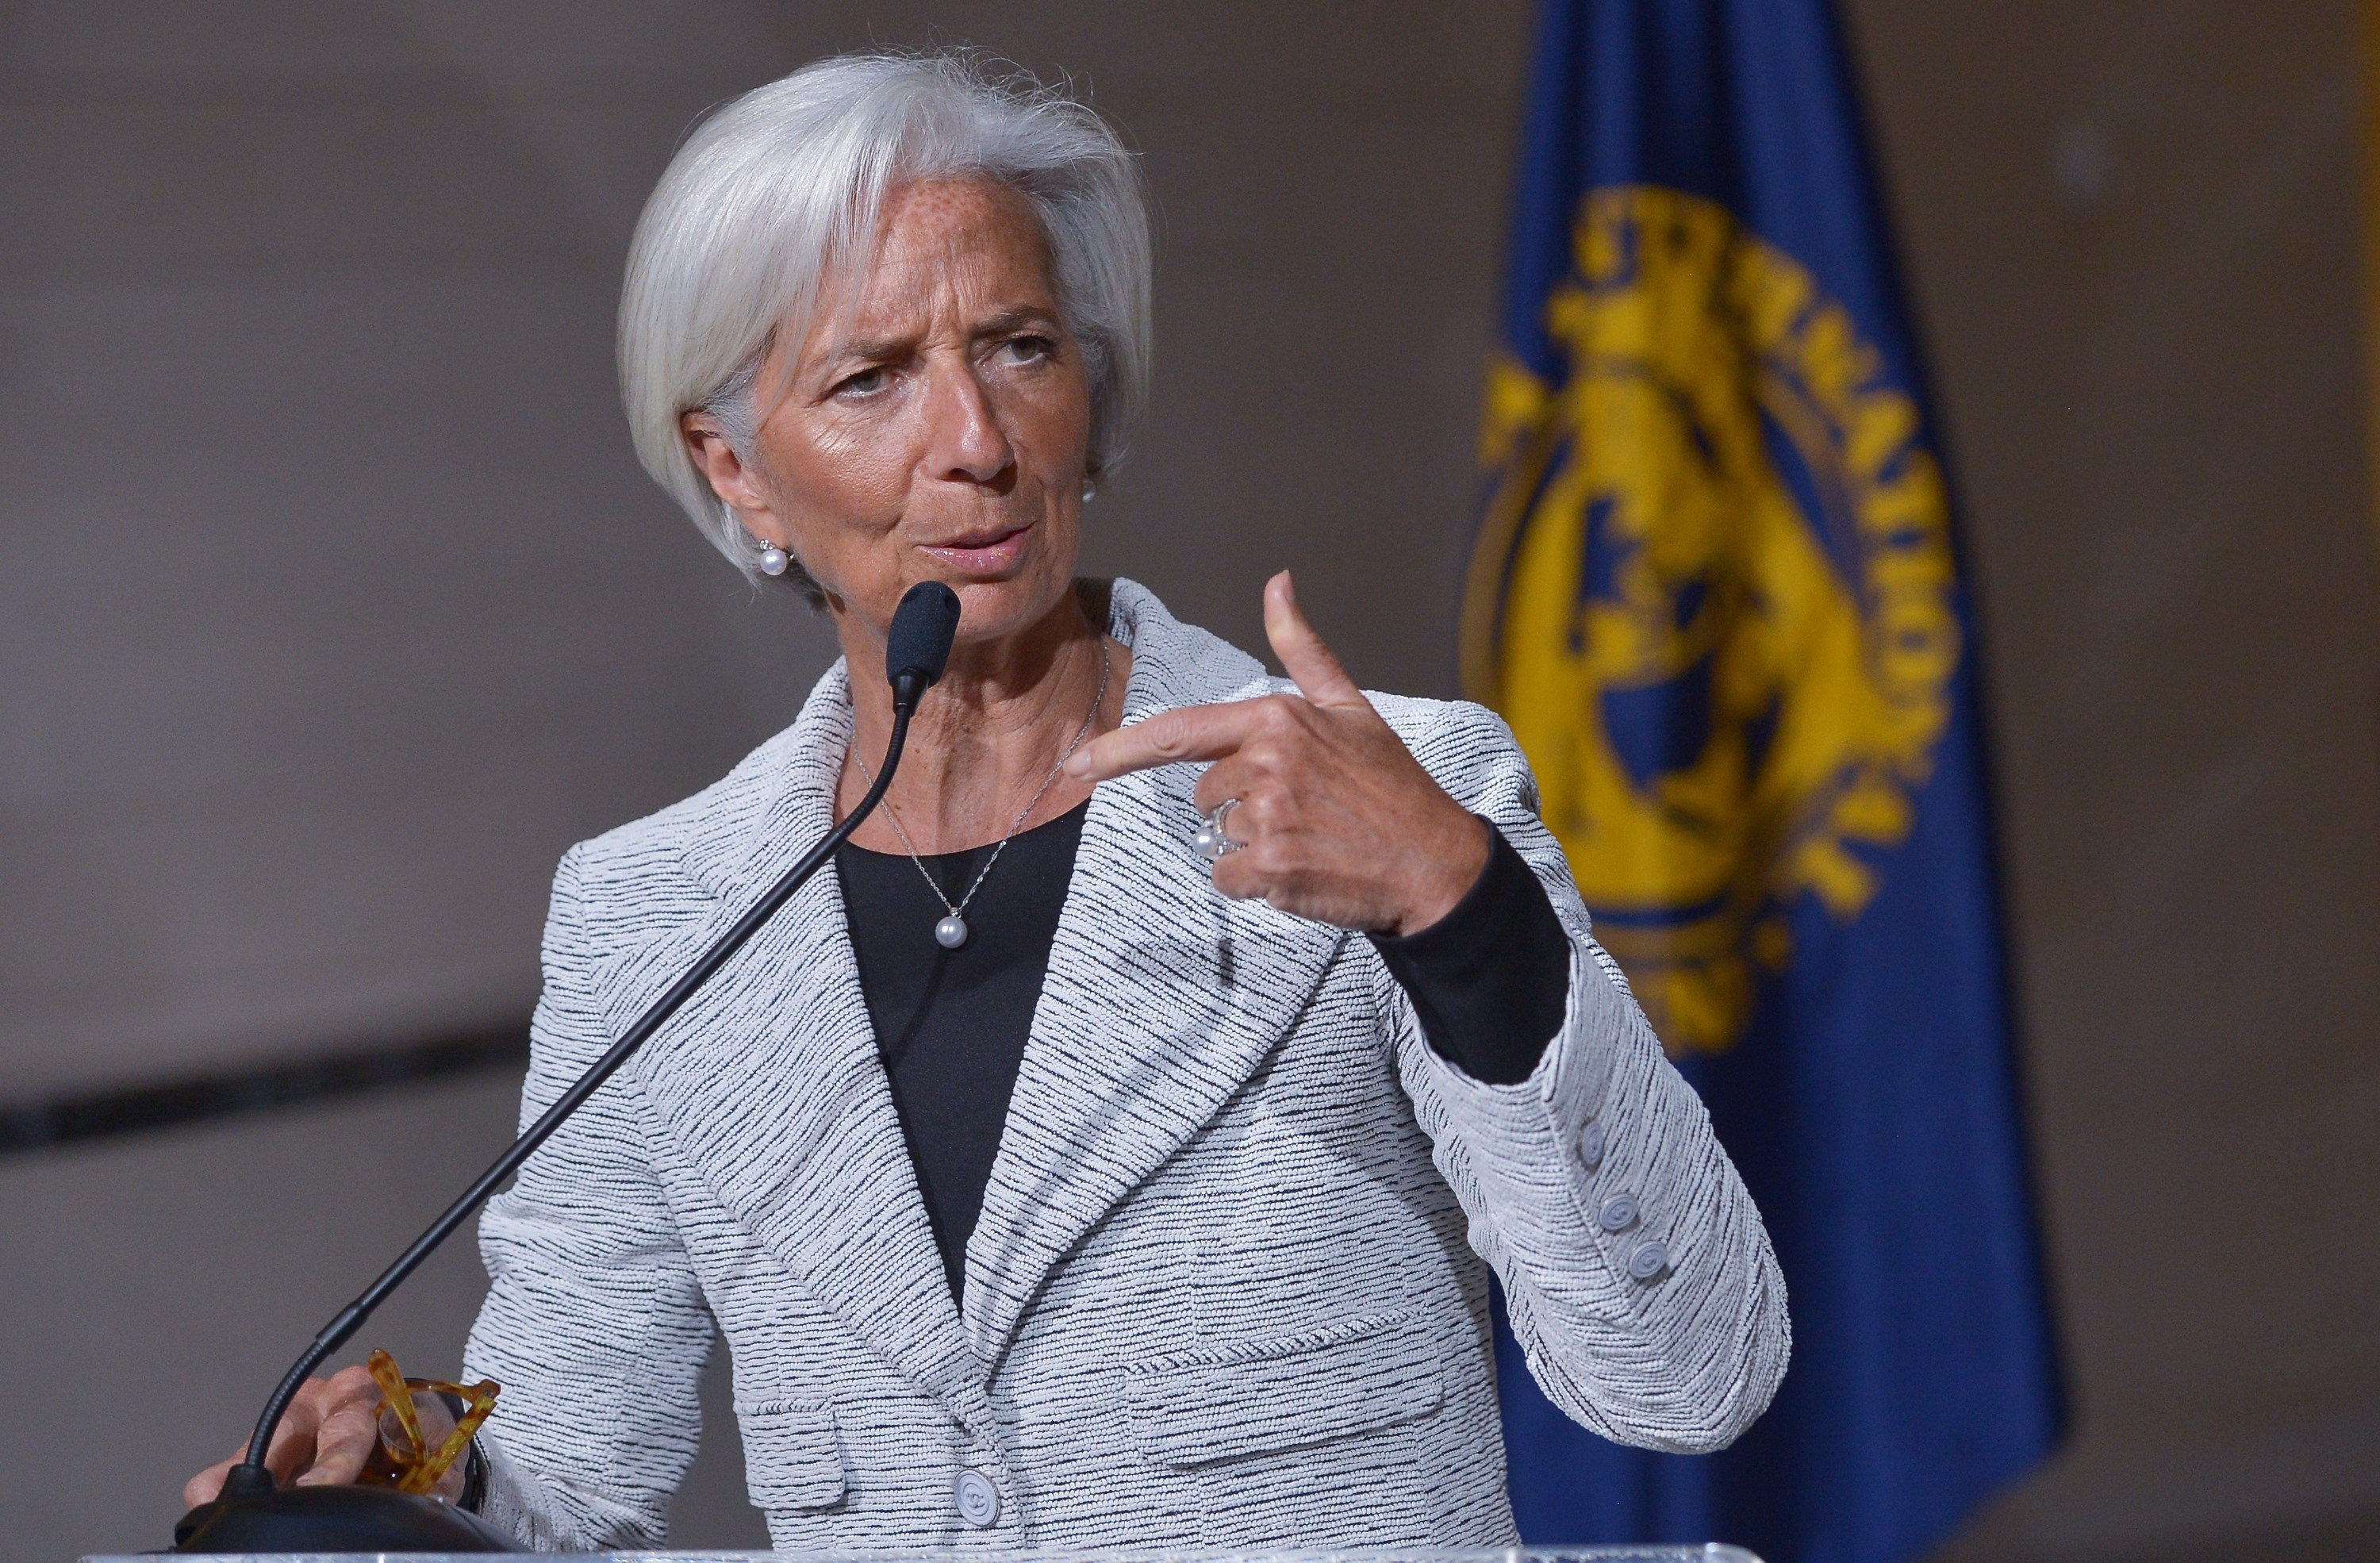 Economic Summit has attracted business agreements and economic contributions from Arab countries, Lagarde said (AFP PHOTO/Mandel NGAN)